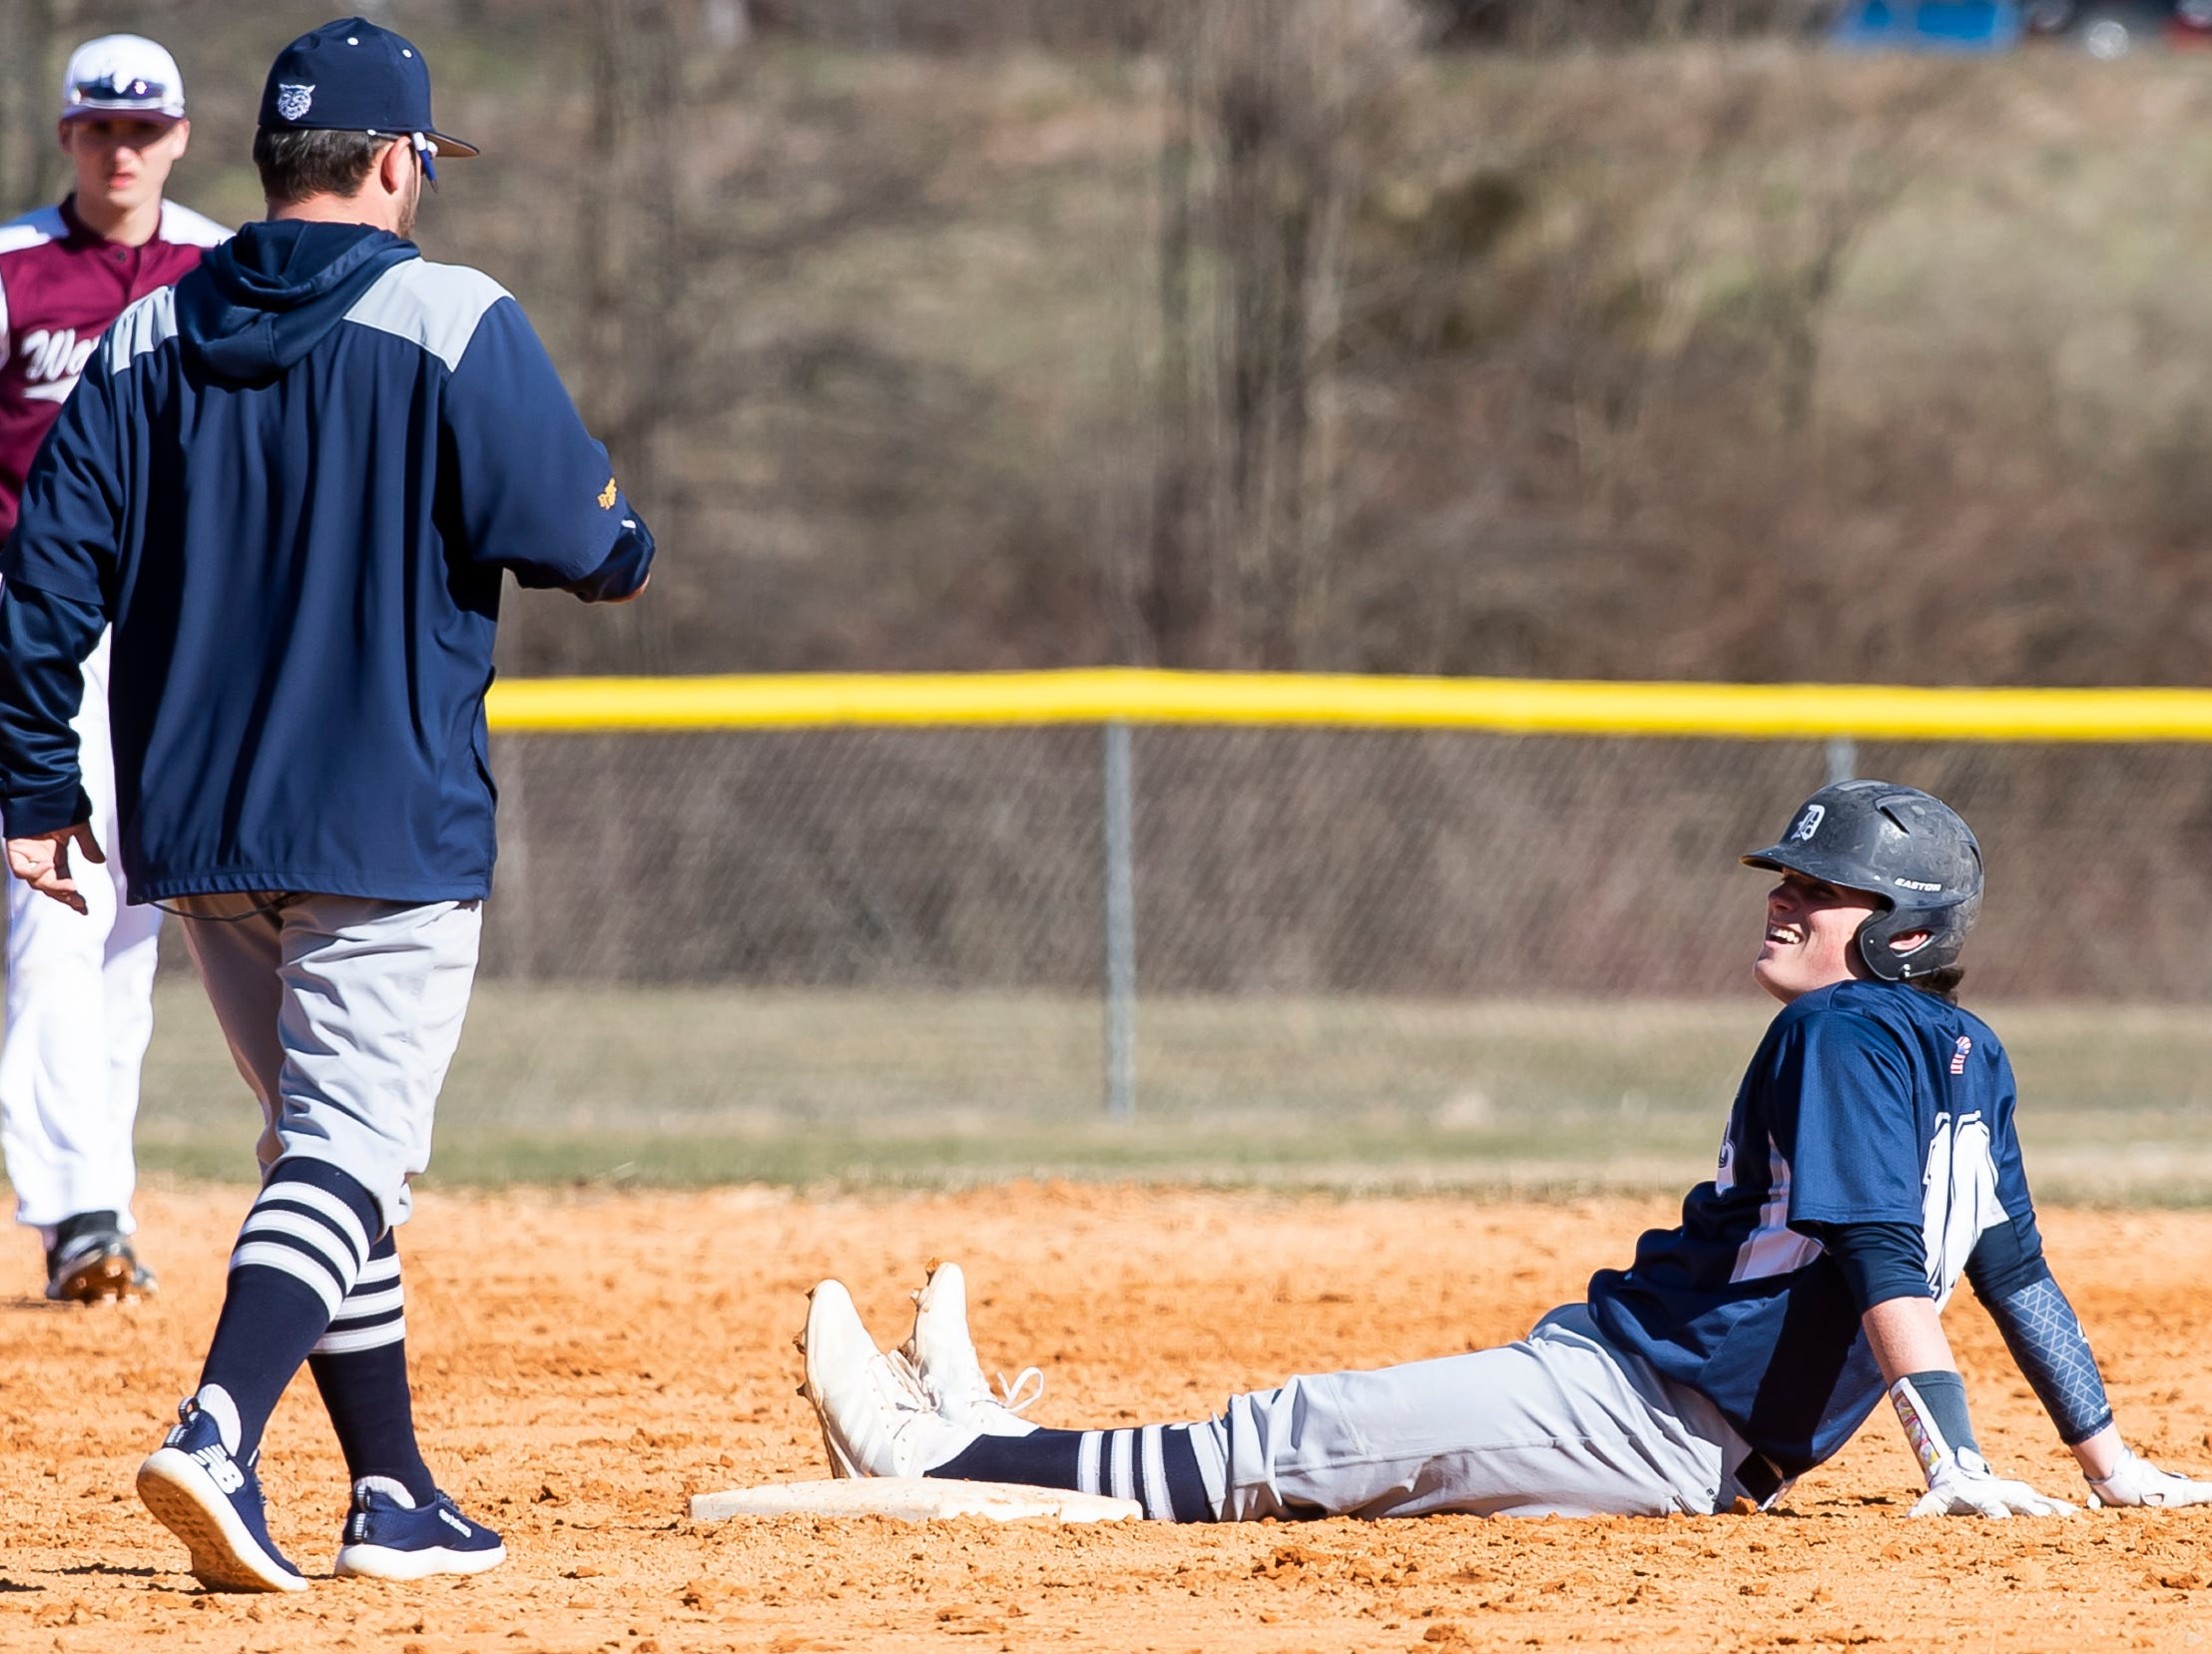 Dallastown's Julian Bailey smiles on second base as a coach checks on him after suffering a minor injury during a YAIAA baseball game against Gettysburg on Wednesday, March 27, 2019.